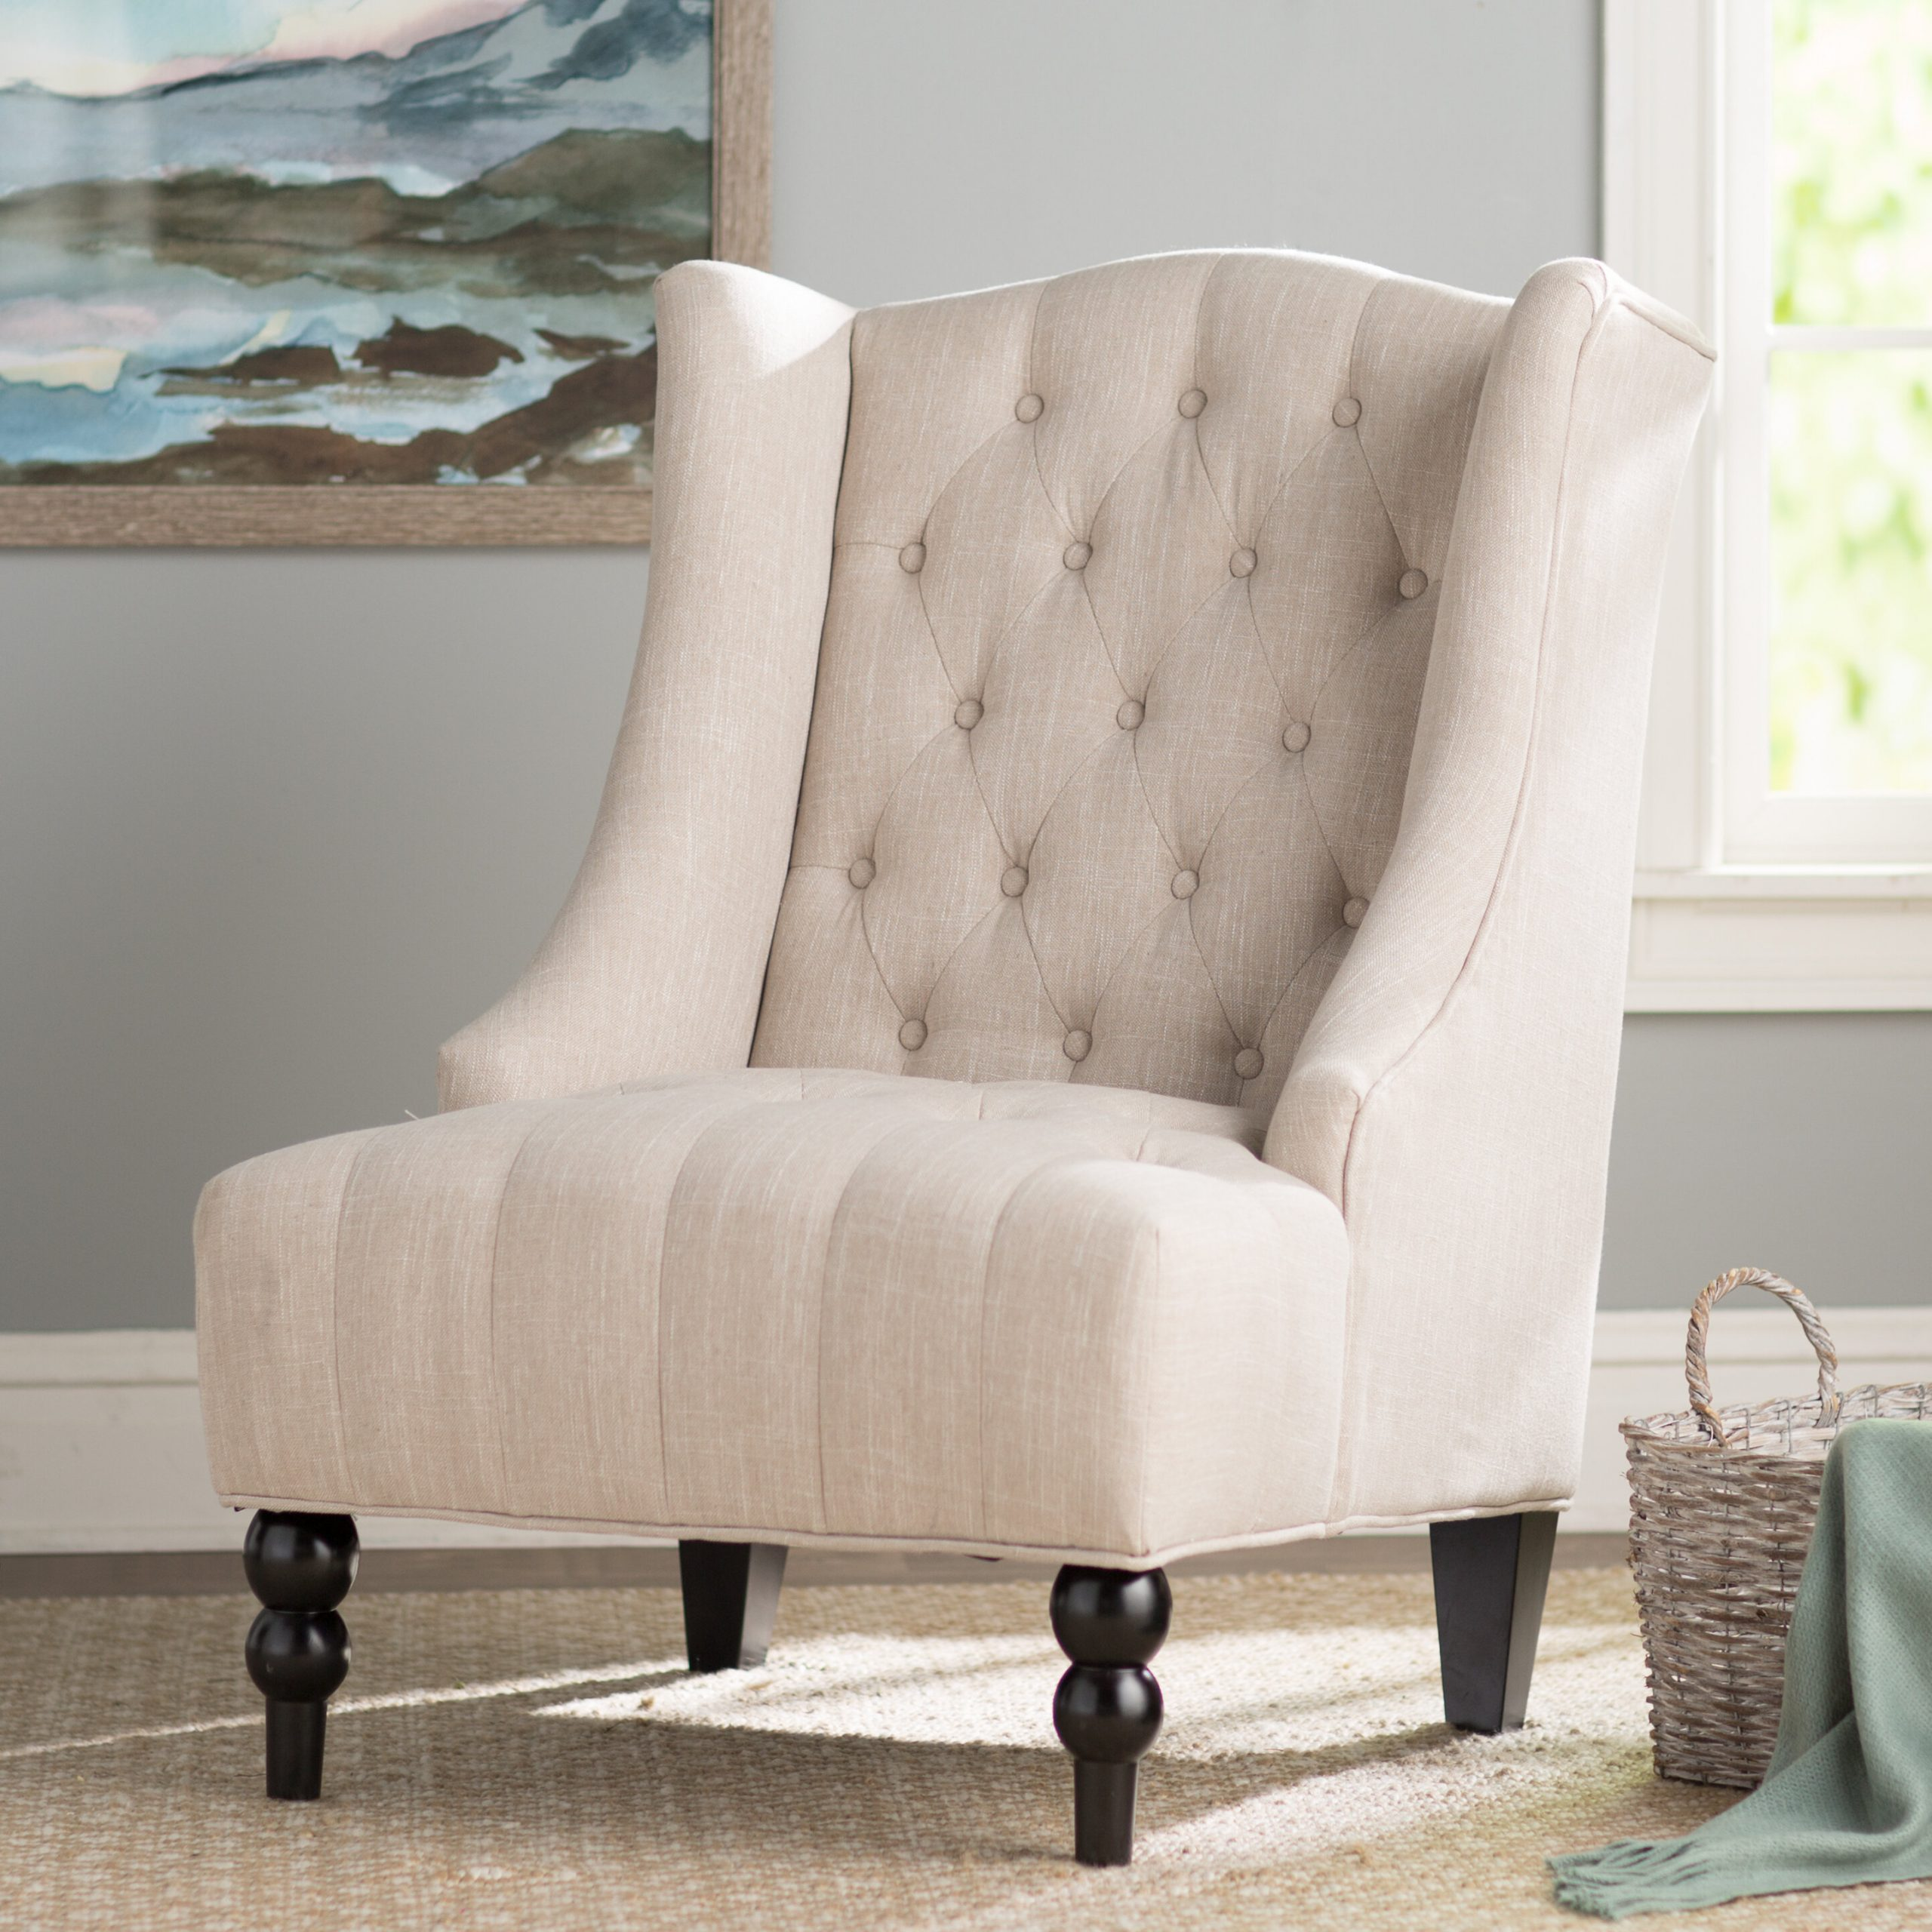 Espresso Wood Wingback Accent Chairs You'Ll Love In 2021 In Waterton Wingback Chairs (View 4 of 15)